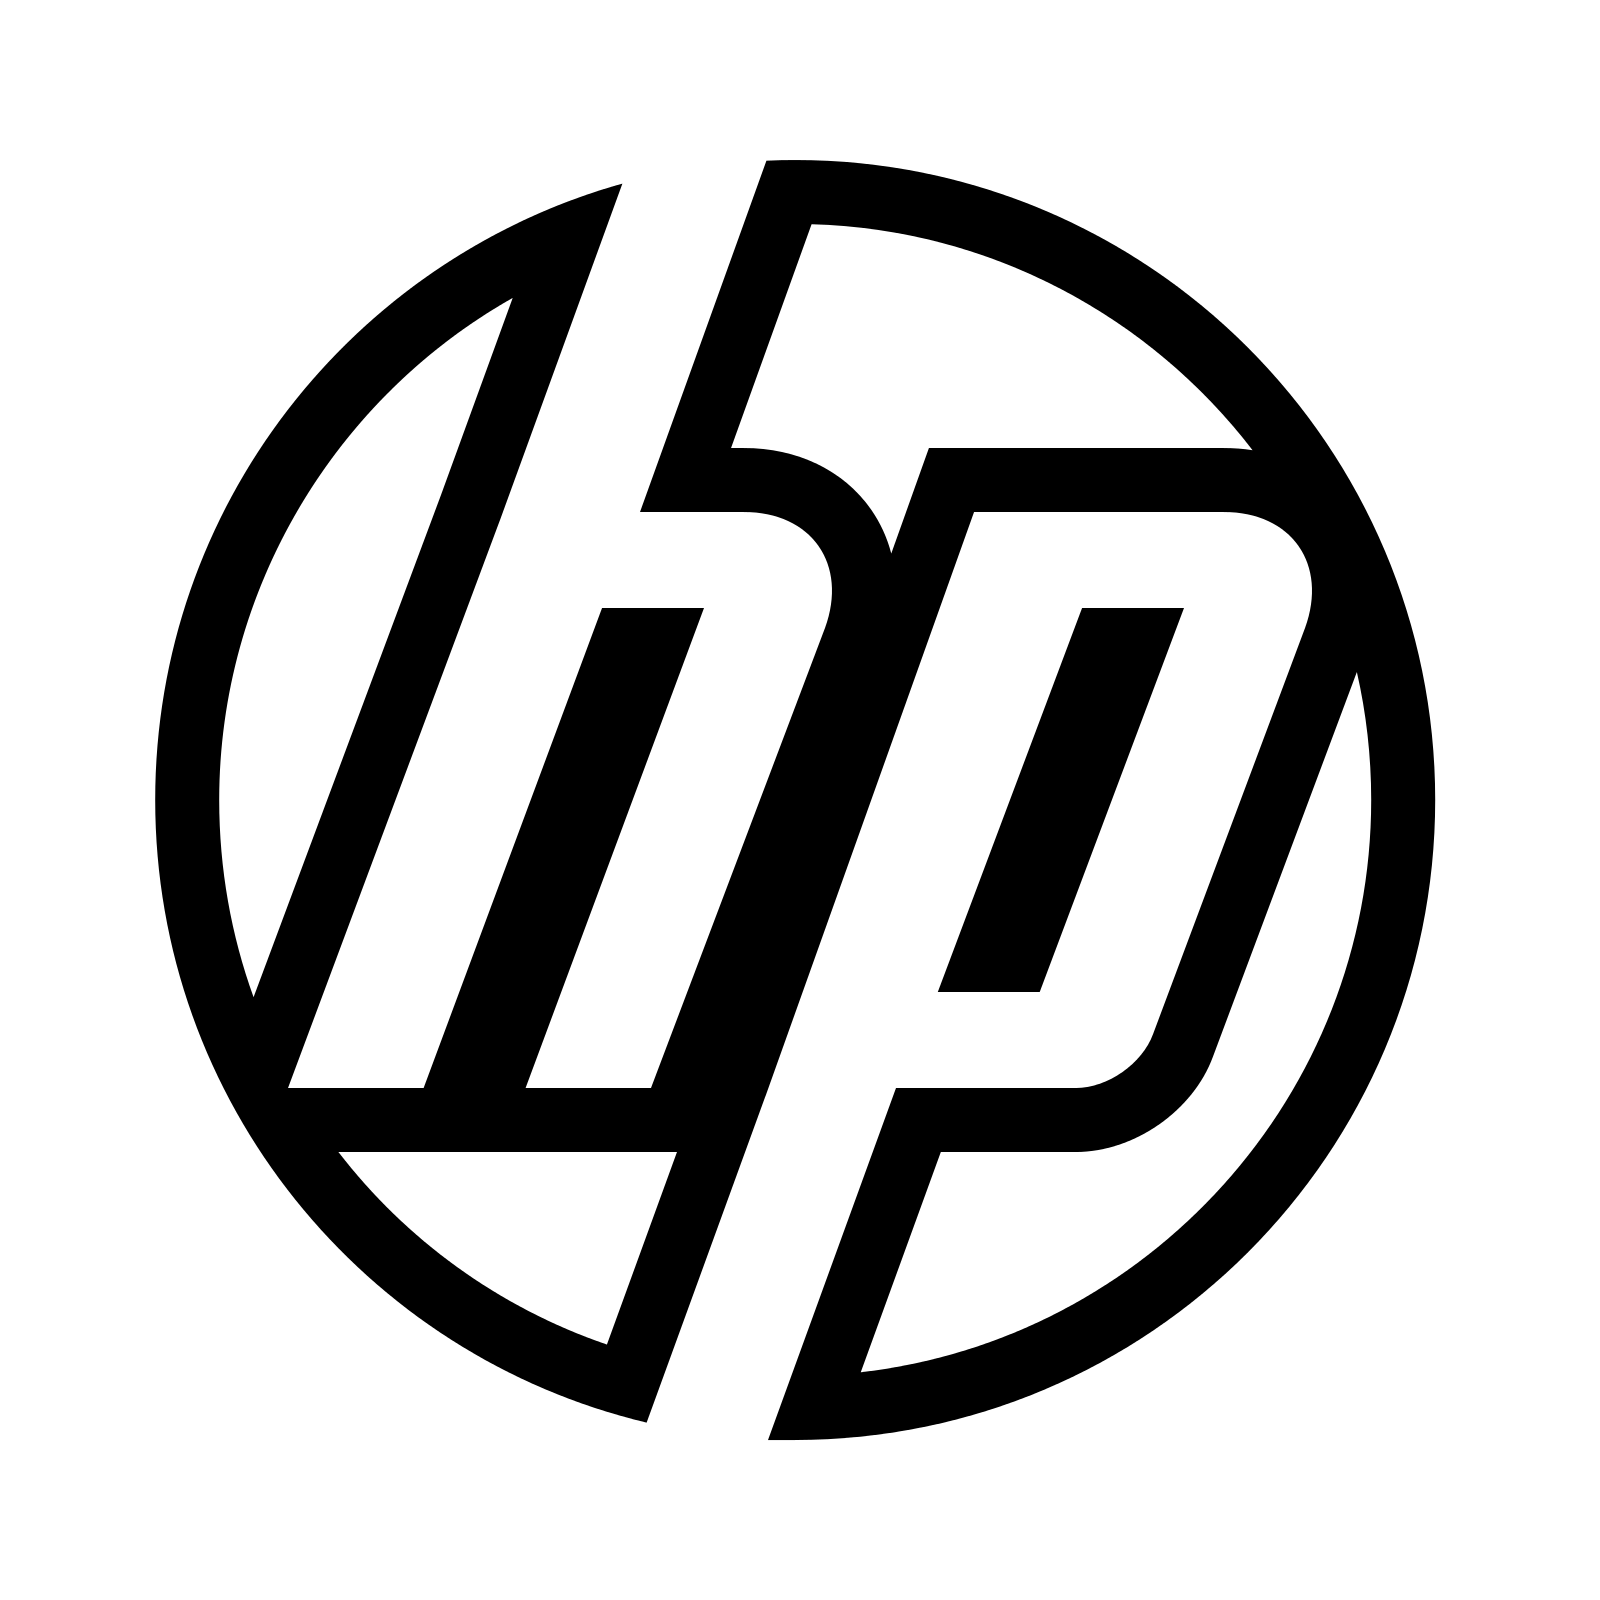 Hp PNG - 33859